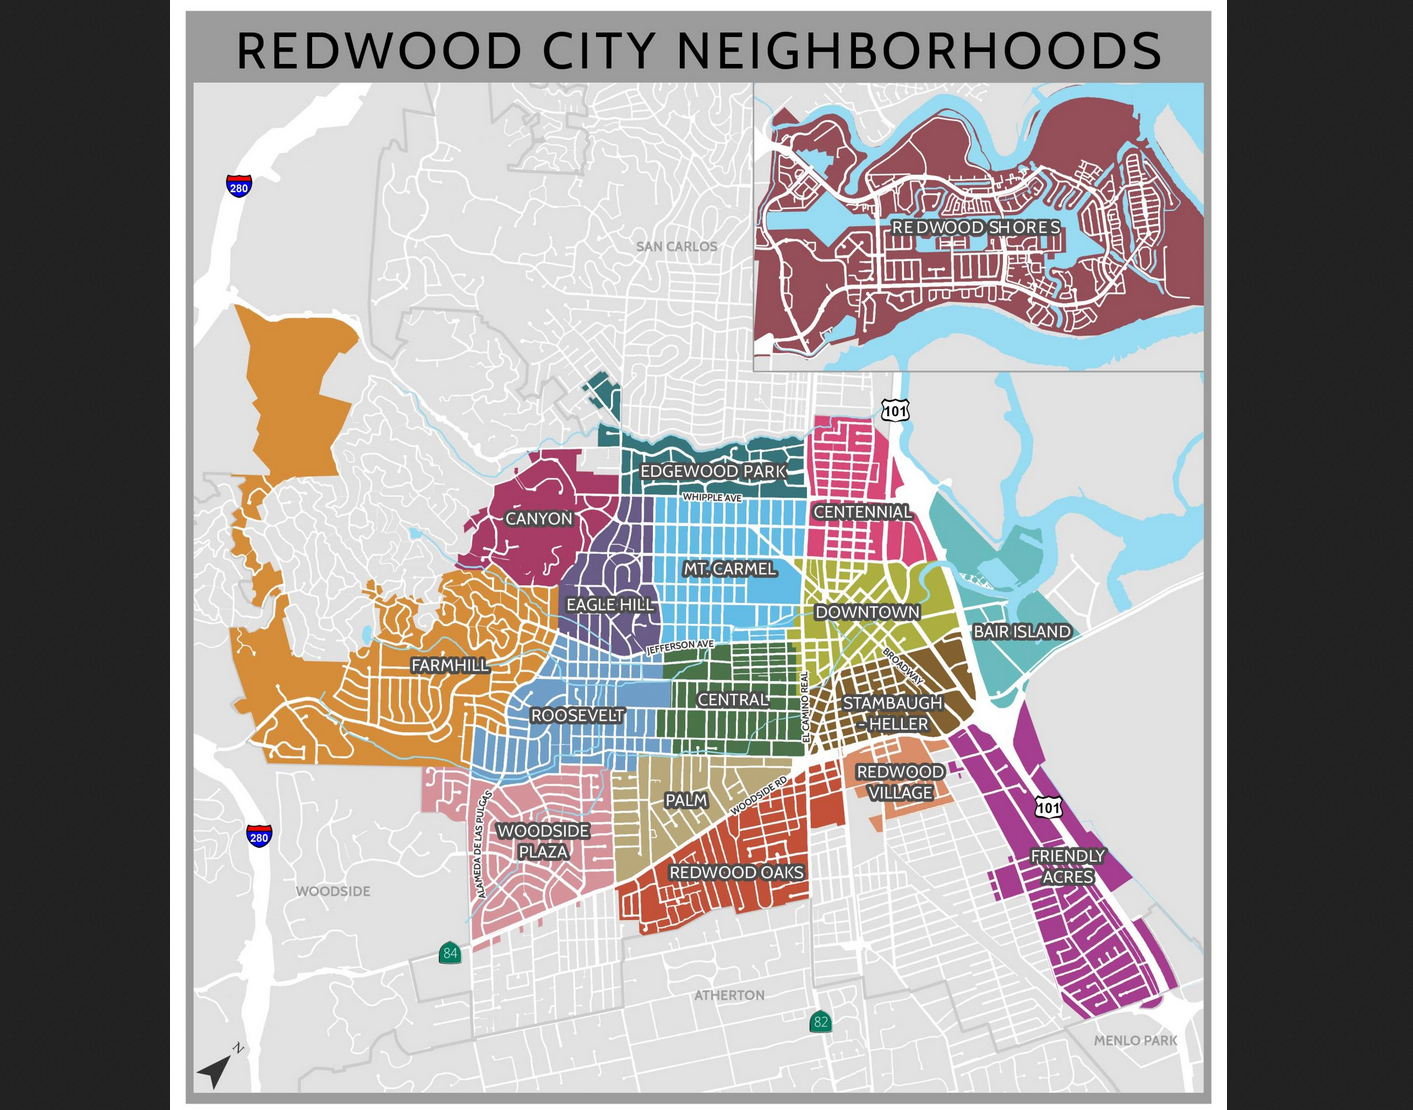 Redwood City residents may have to buy permits to park in